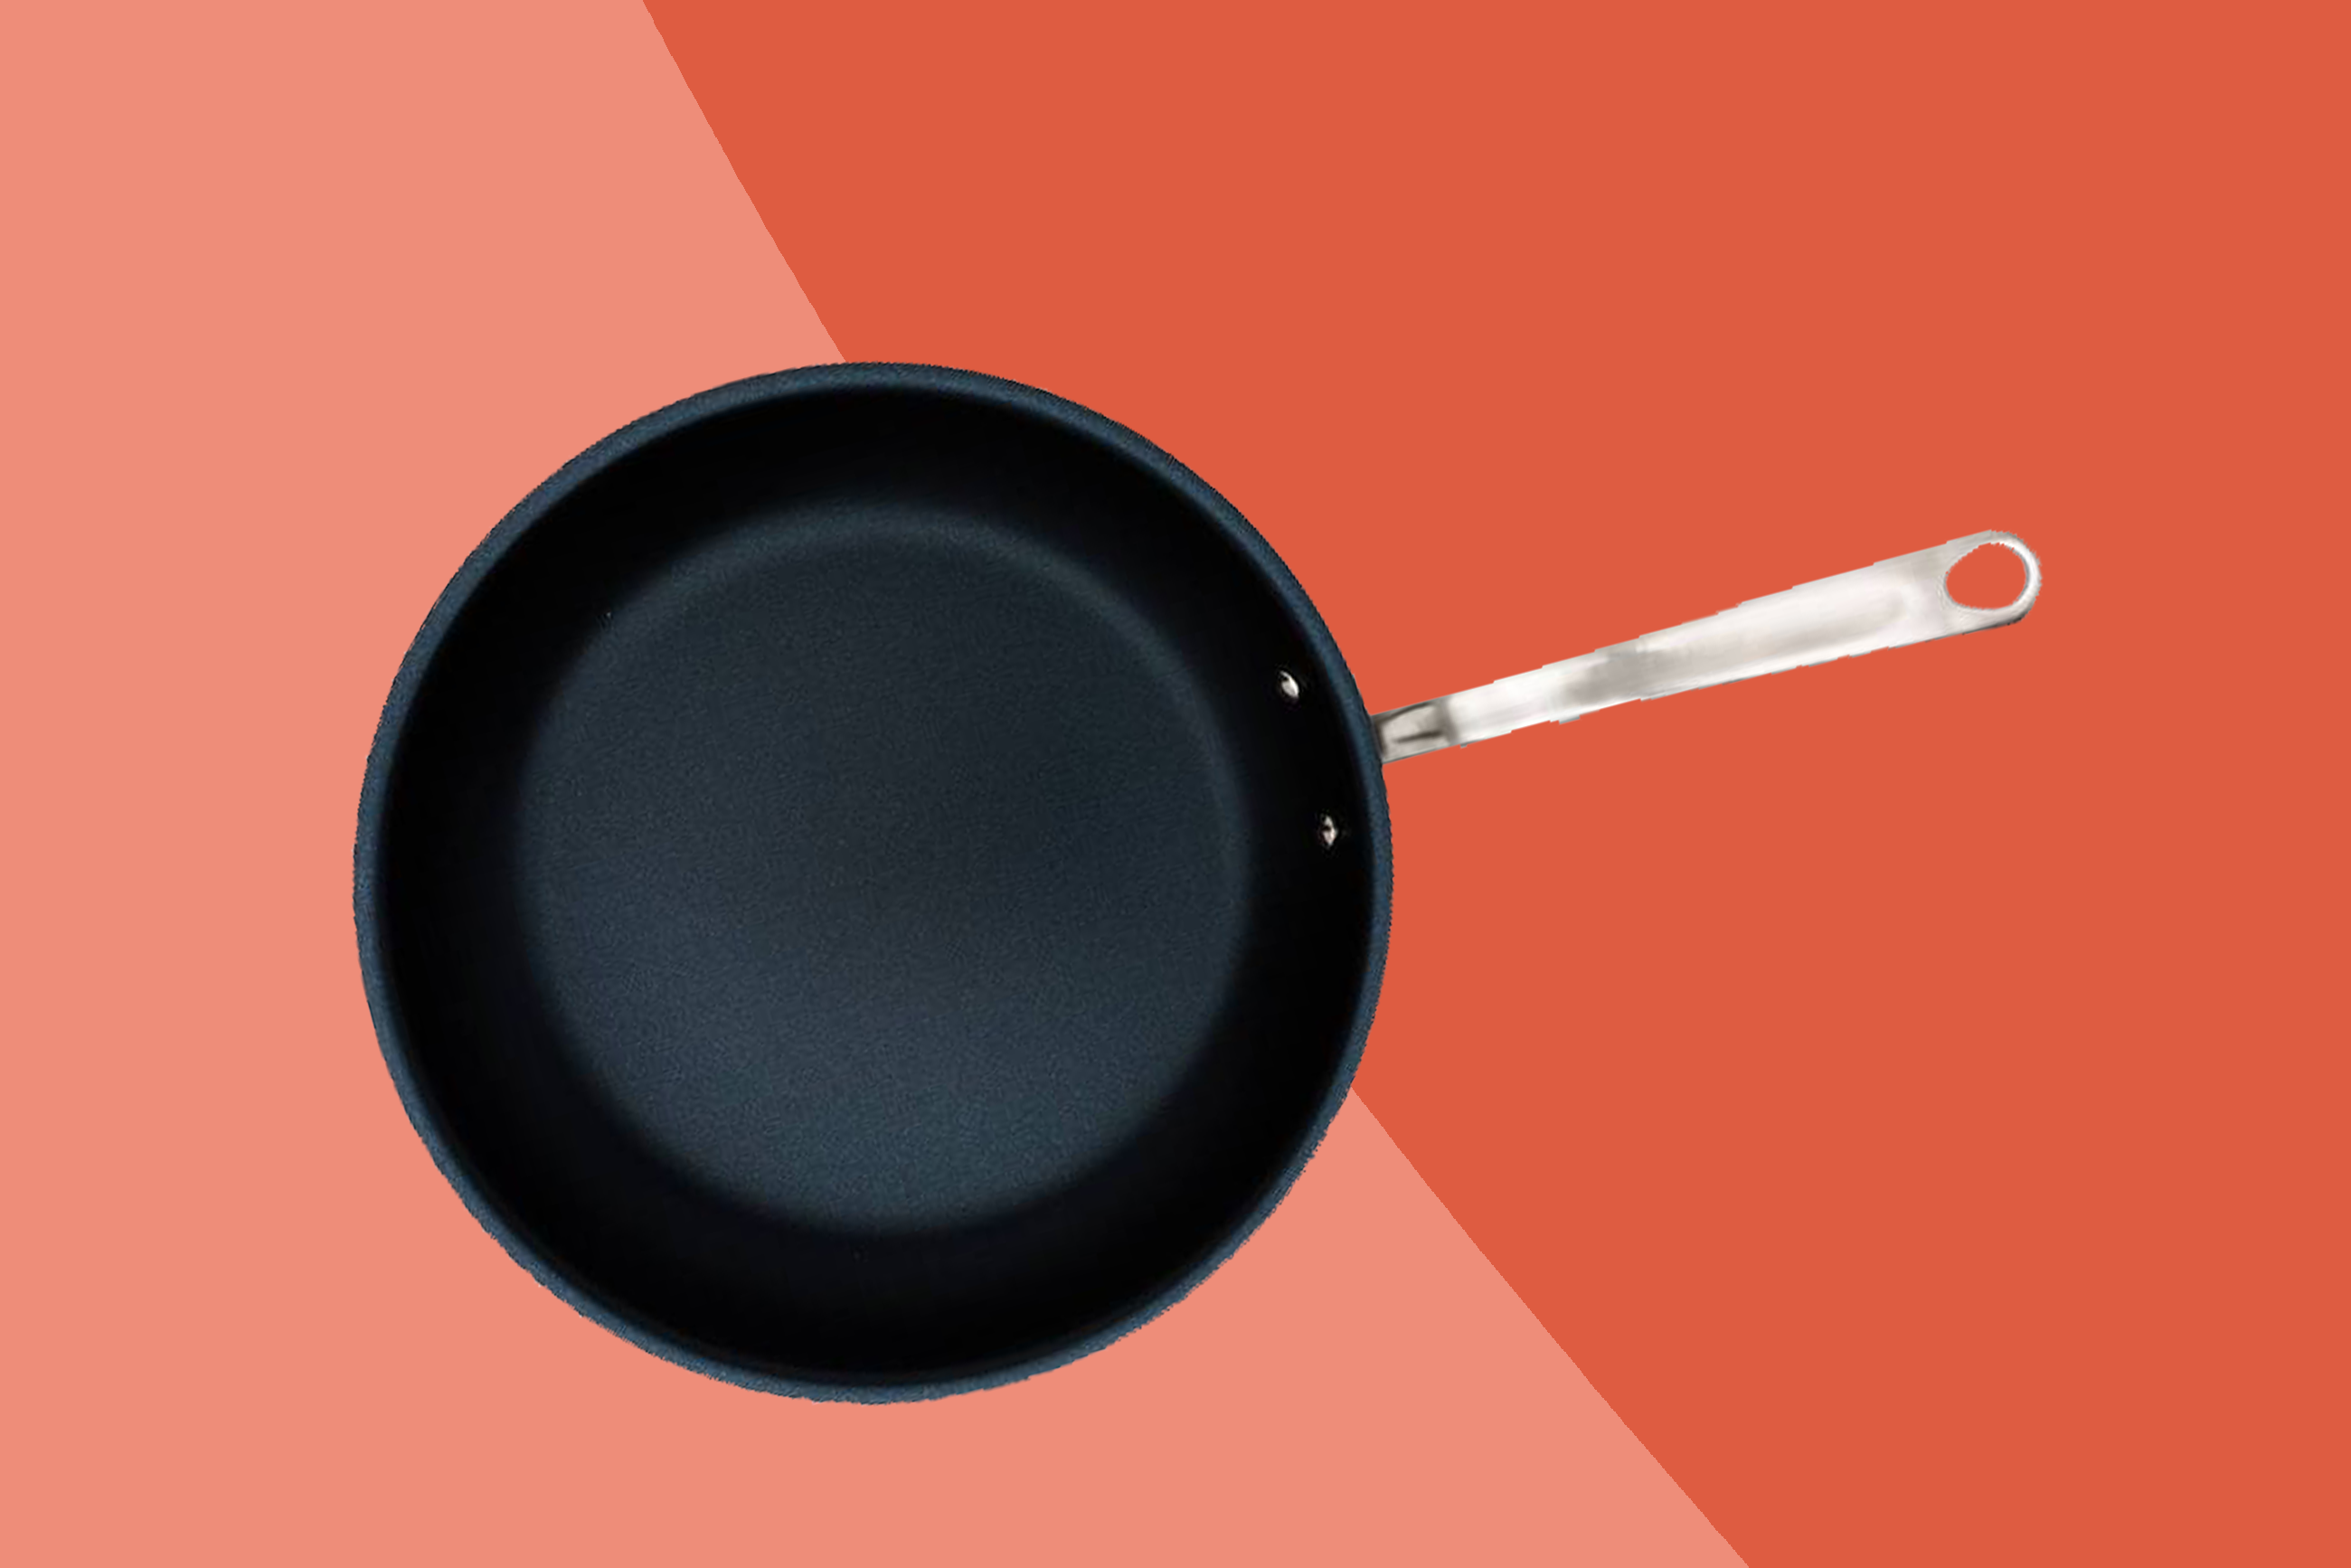 A made-in nonstick skillet on a two-tone orange and pink background